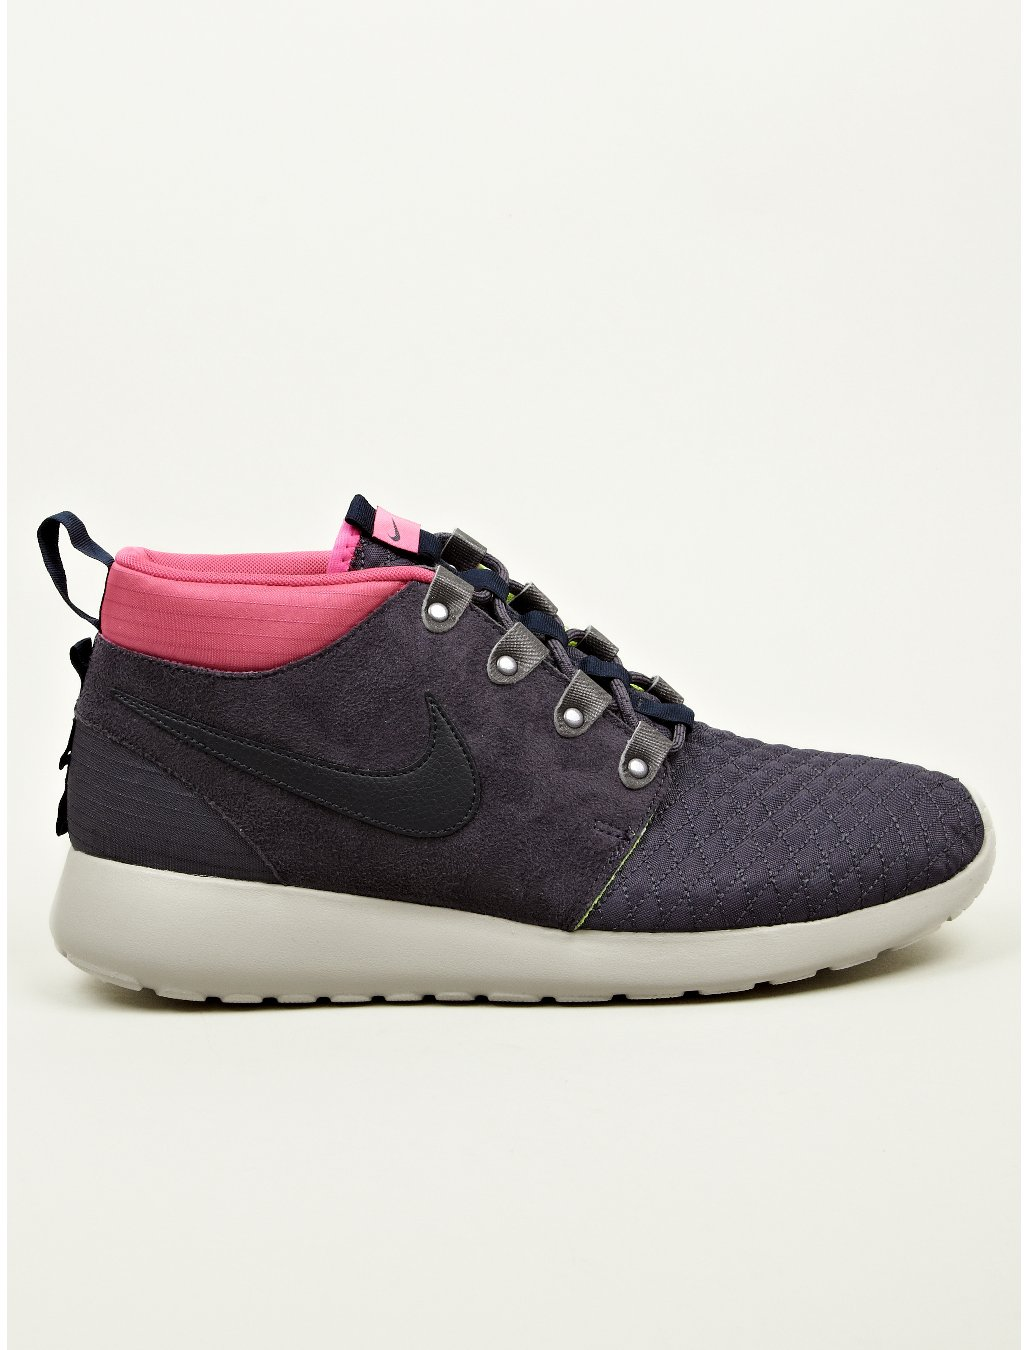 yjxxud navy blue nike roshe run Black Friday 2016 Deals Sales & Cyber